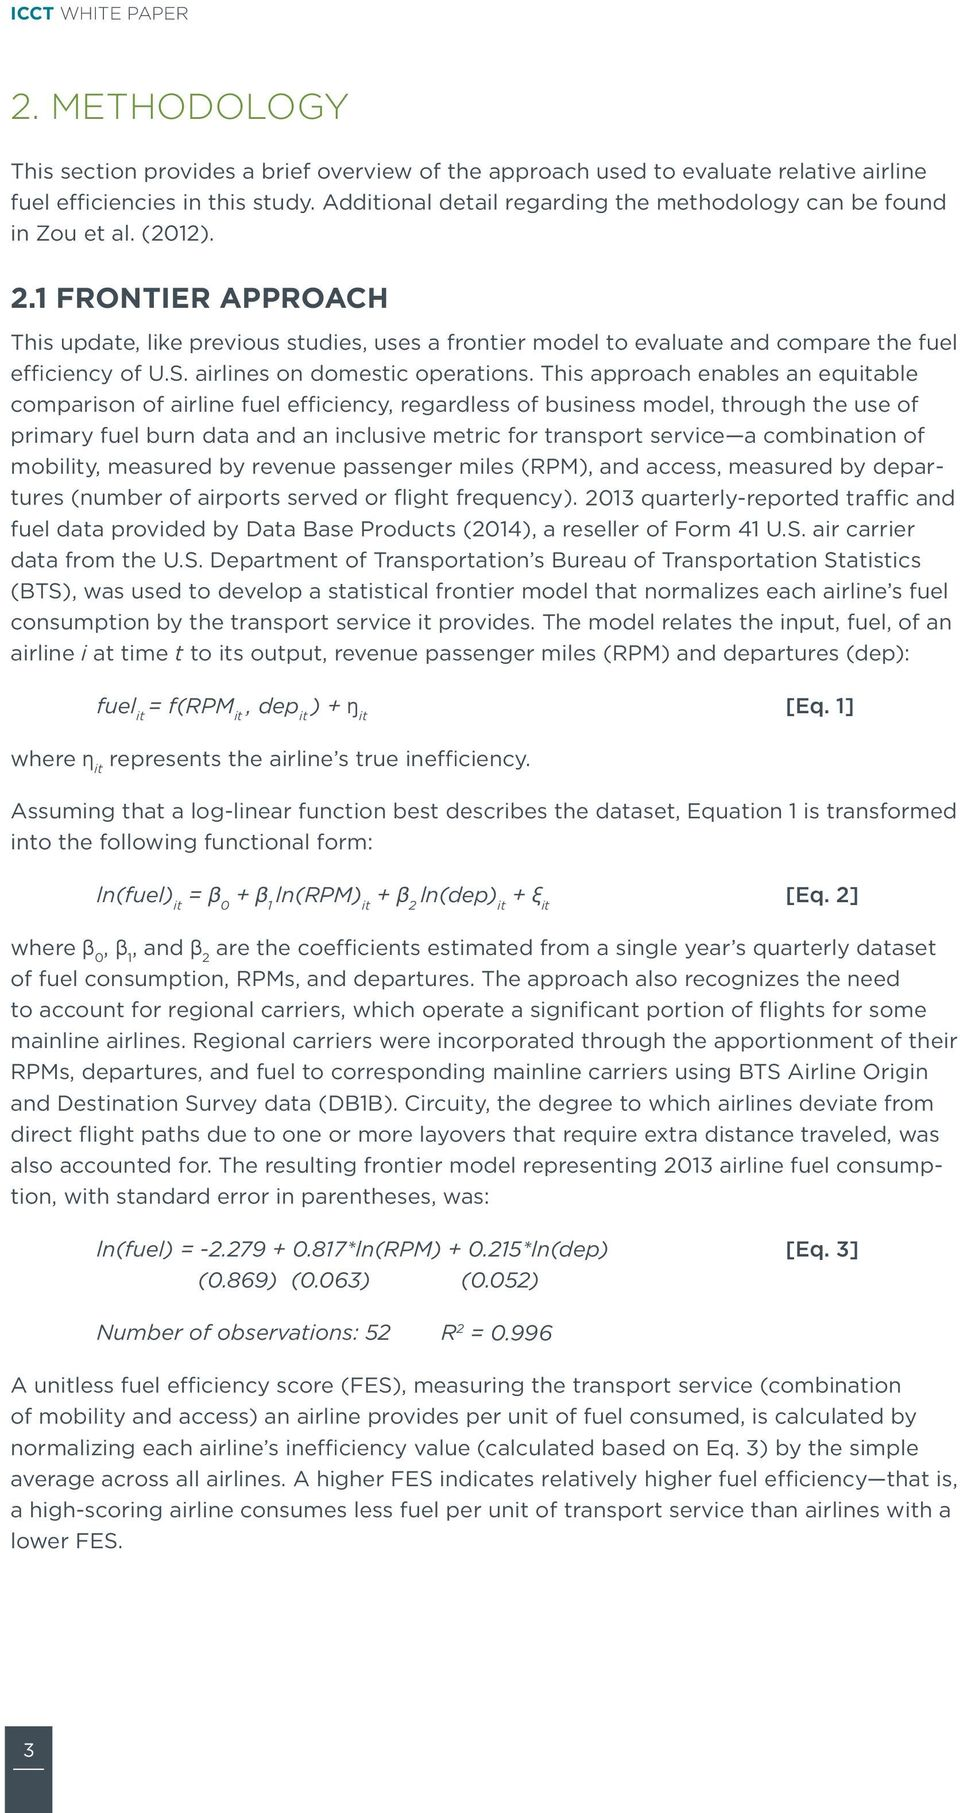 1 FRONTIER APPROACH This update, like previous studies, uses a frontier model to evaluate and compare the fuel efficiency of U.S. airlines on domestic operations.